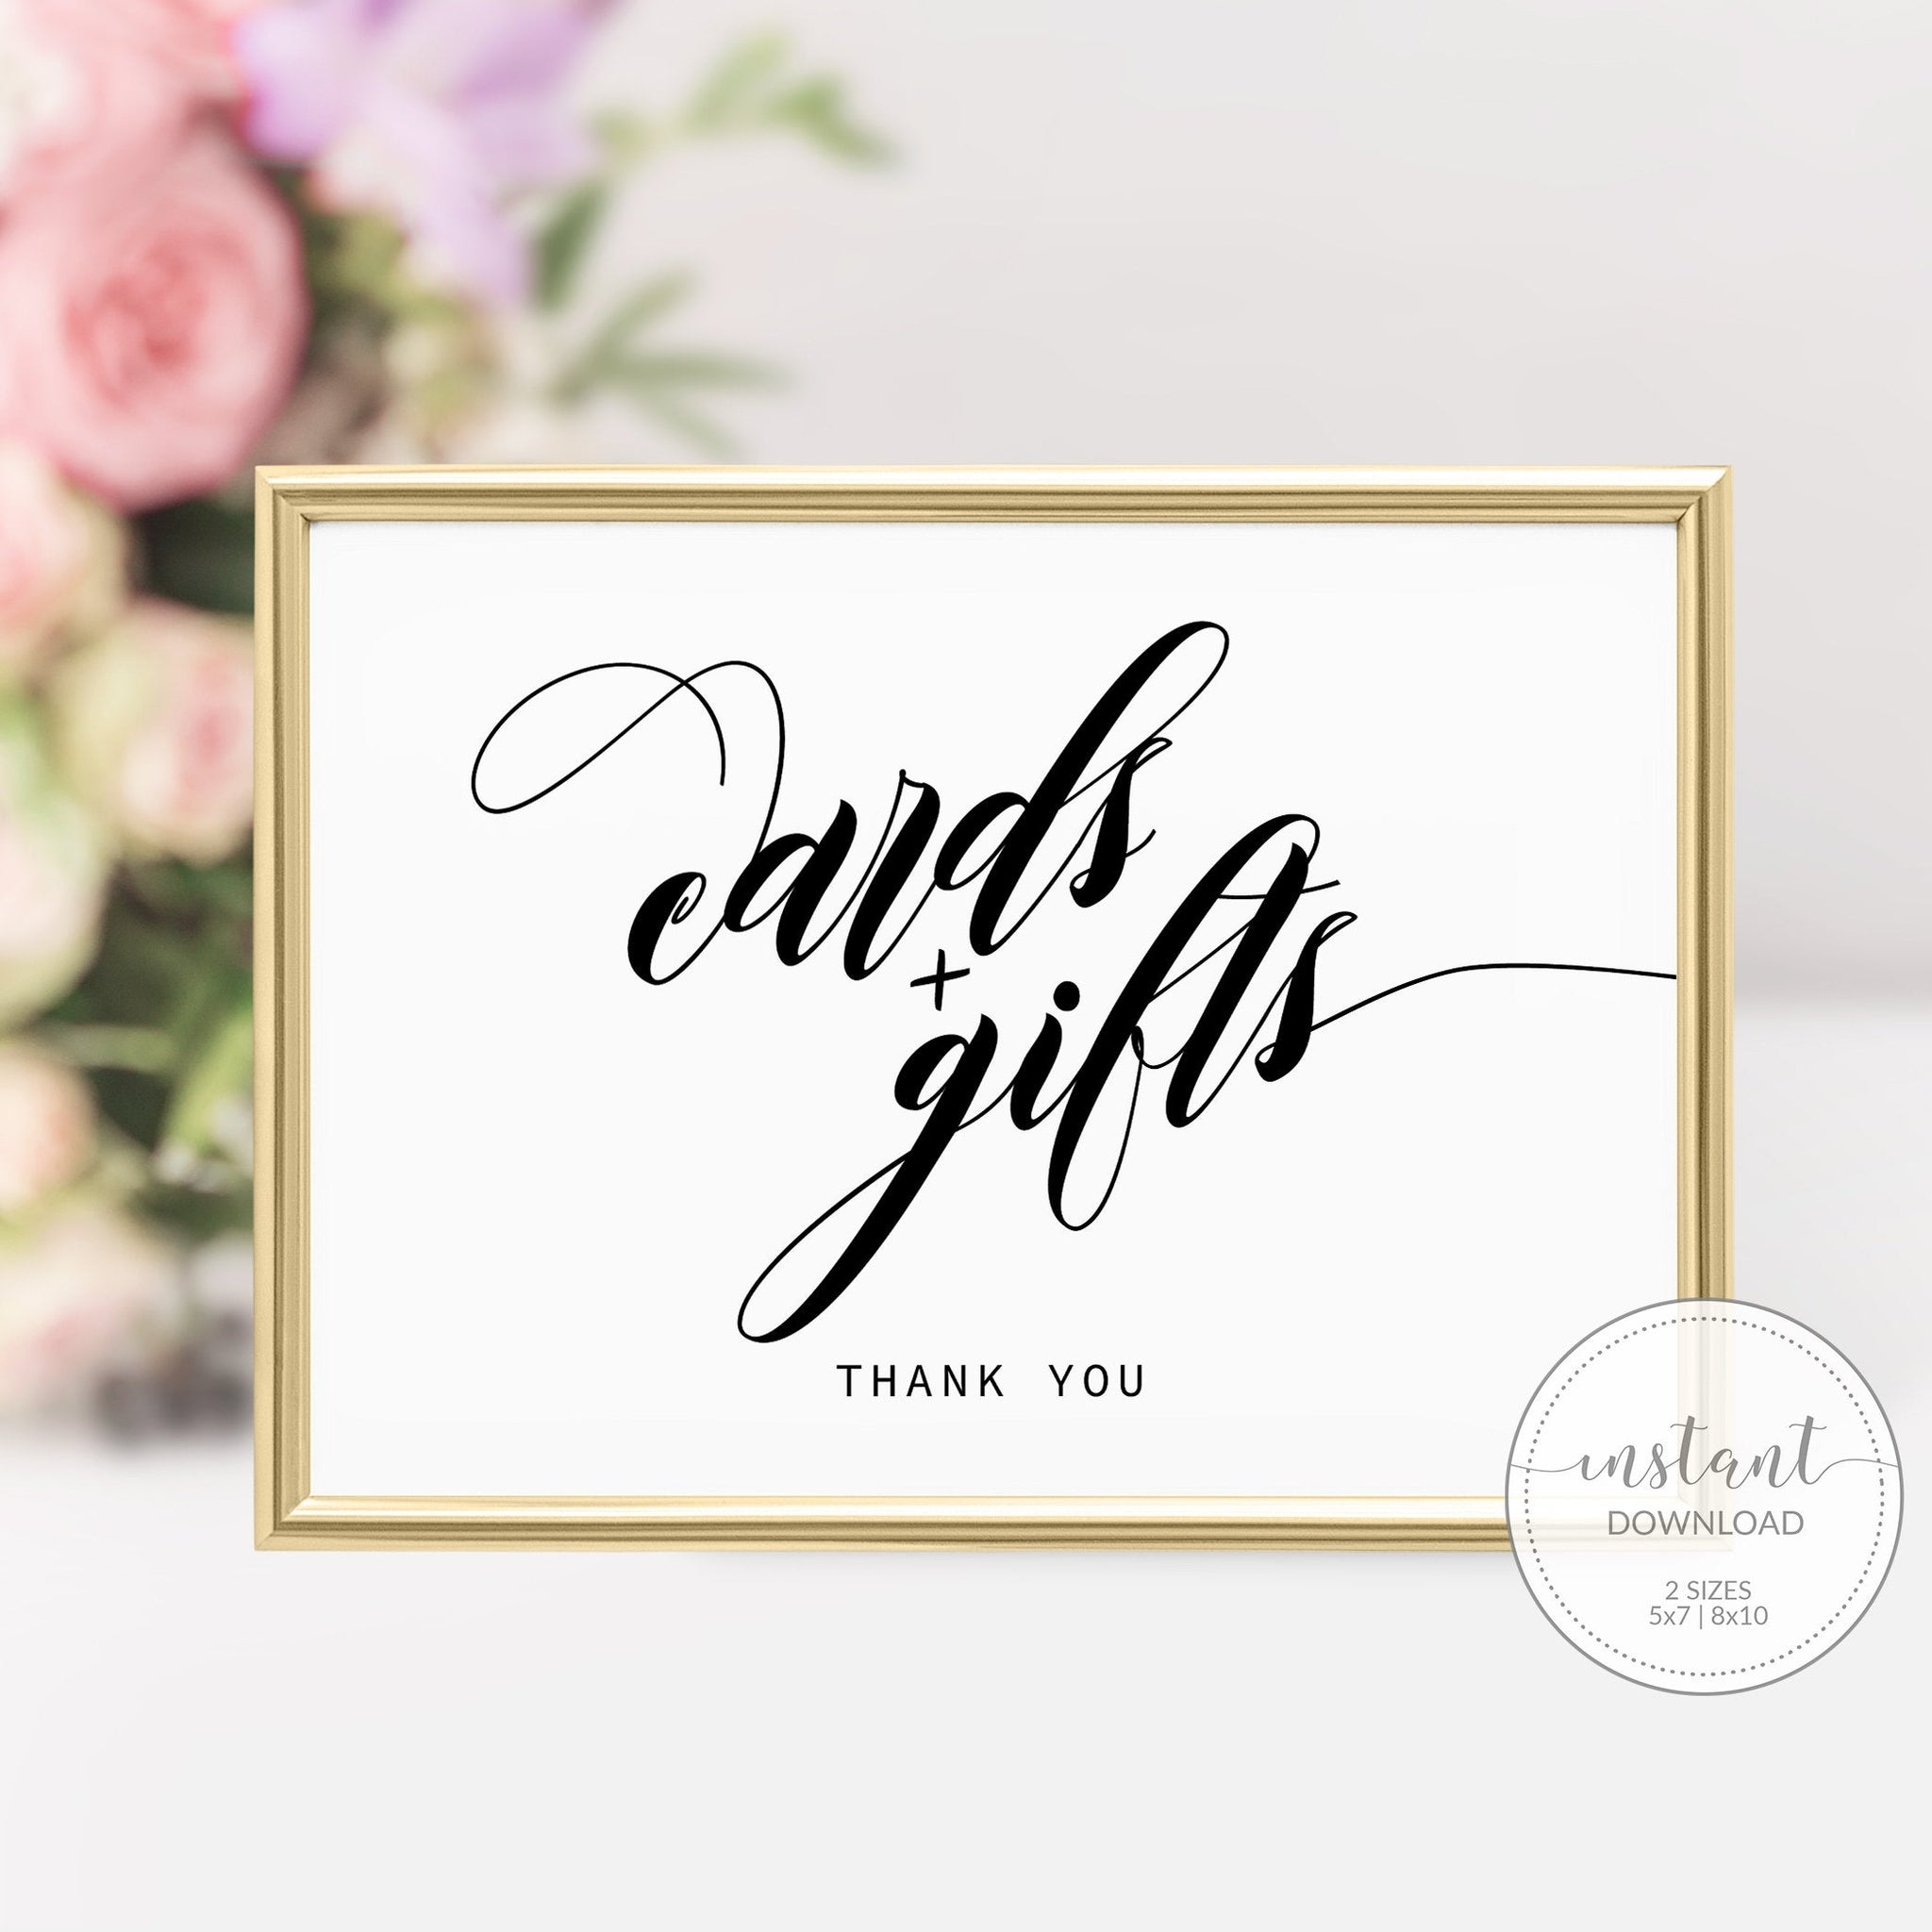 Cards and Gifts Sign, INSTANT DOWNLOAD, Wedding Sign Cards and Gifts, Bridal Shower Decor, Baby Shower Gift Table Sign Printable - SFB100 - @PlumPolkaDot